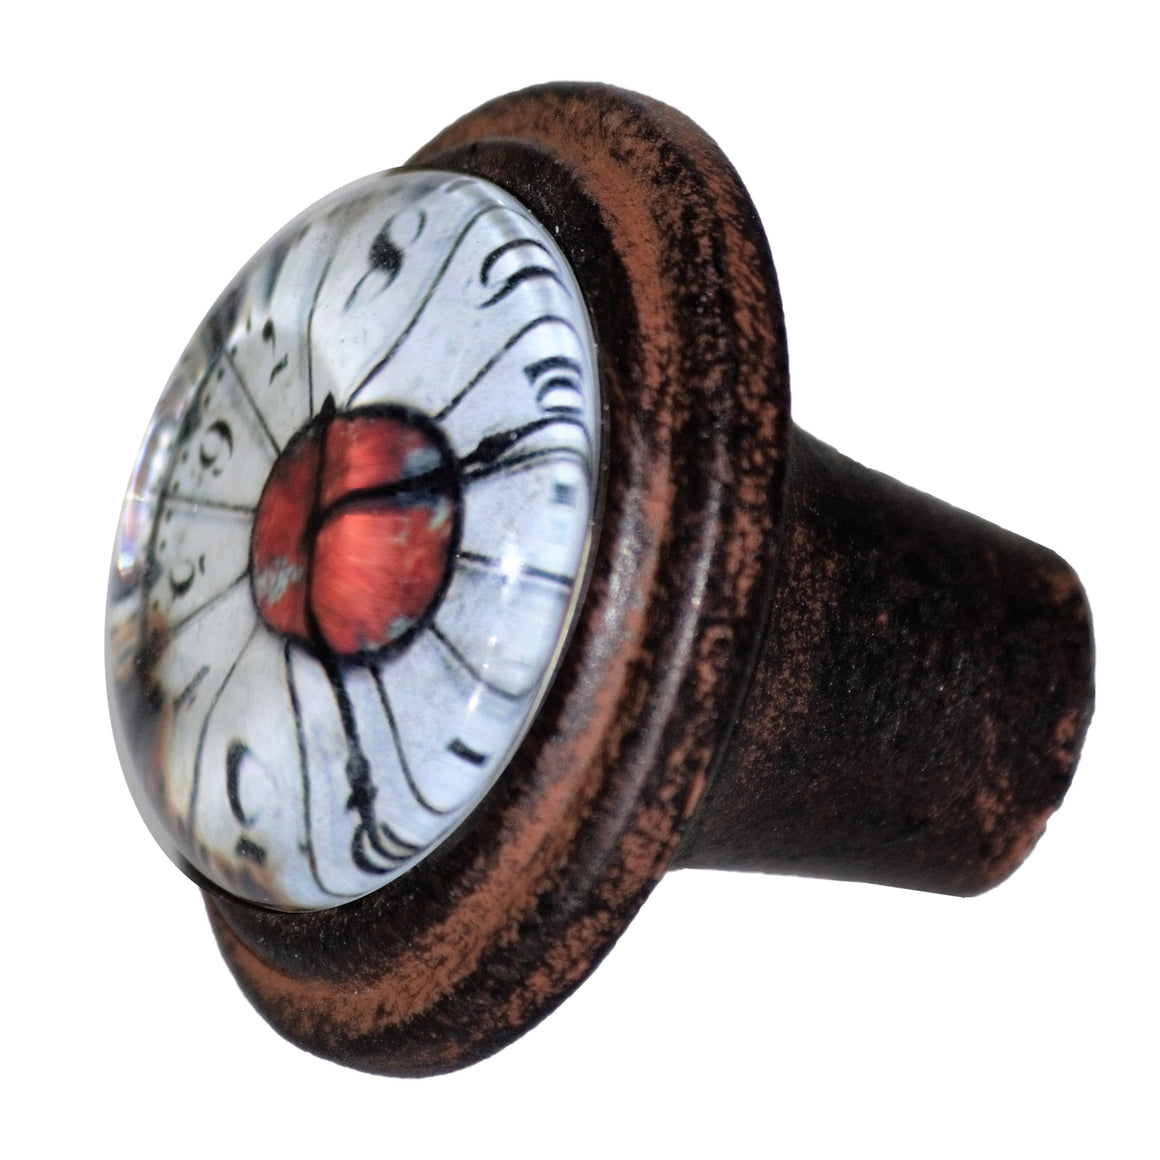 Antique Clock Face Iron Knob - Cafe Brown